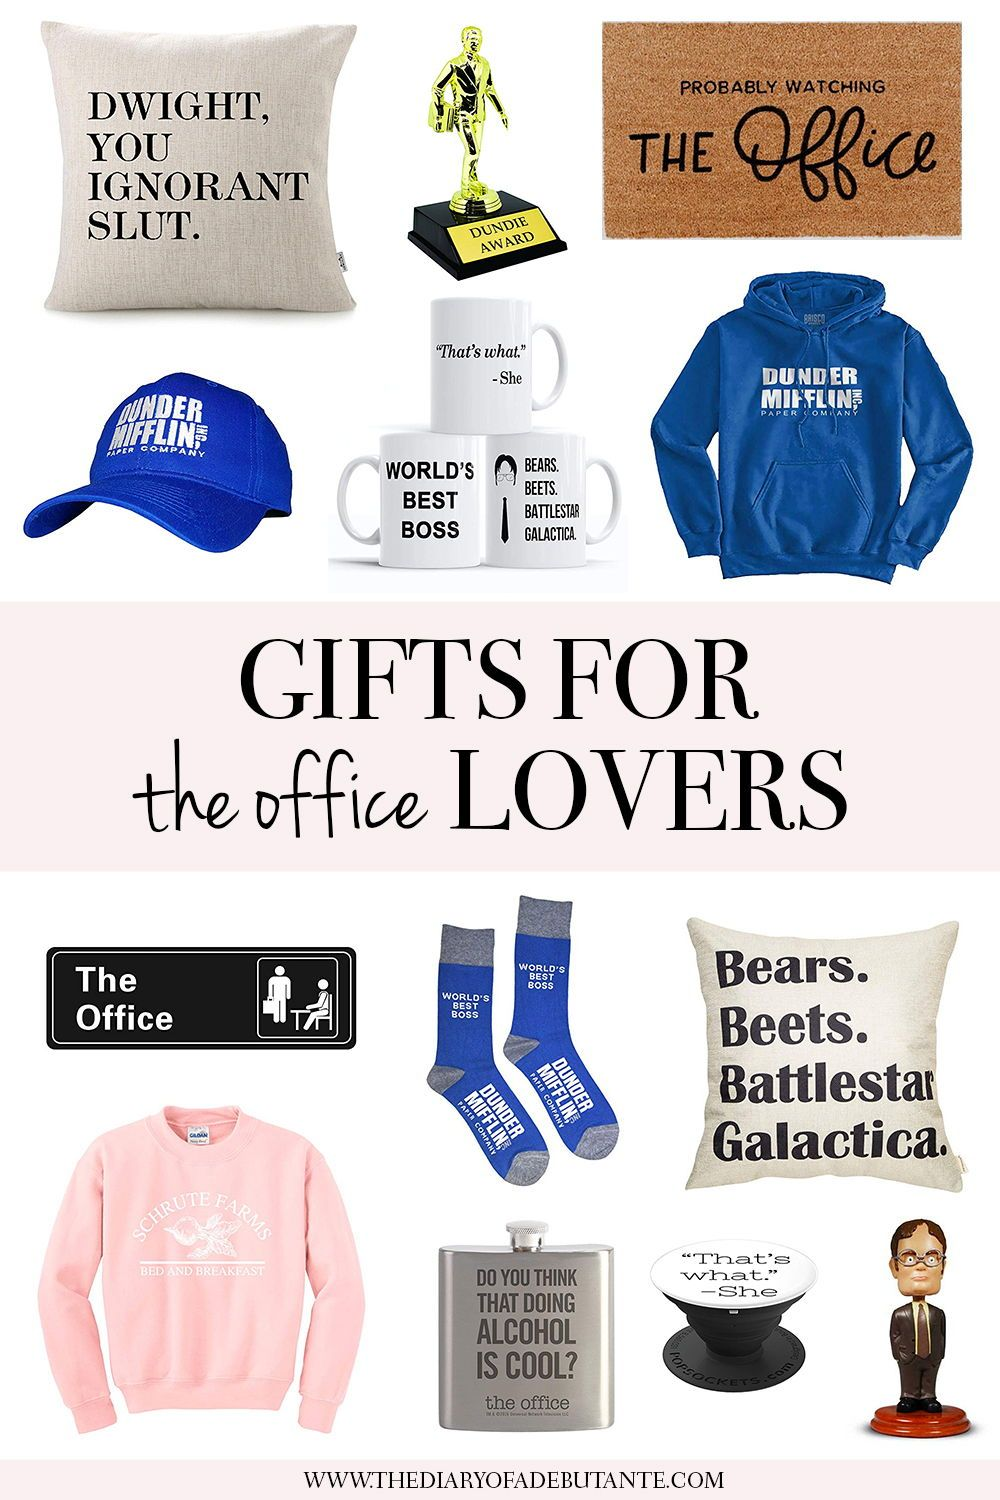 dfa778af0 It goes without saying that The Office is one of the best TV shows ever  created. This holiday gift guide features 16 of the best The Office themed  gift ...